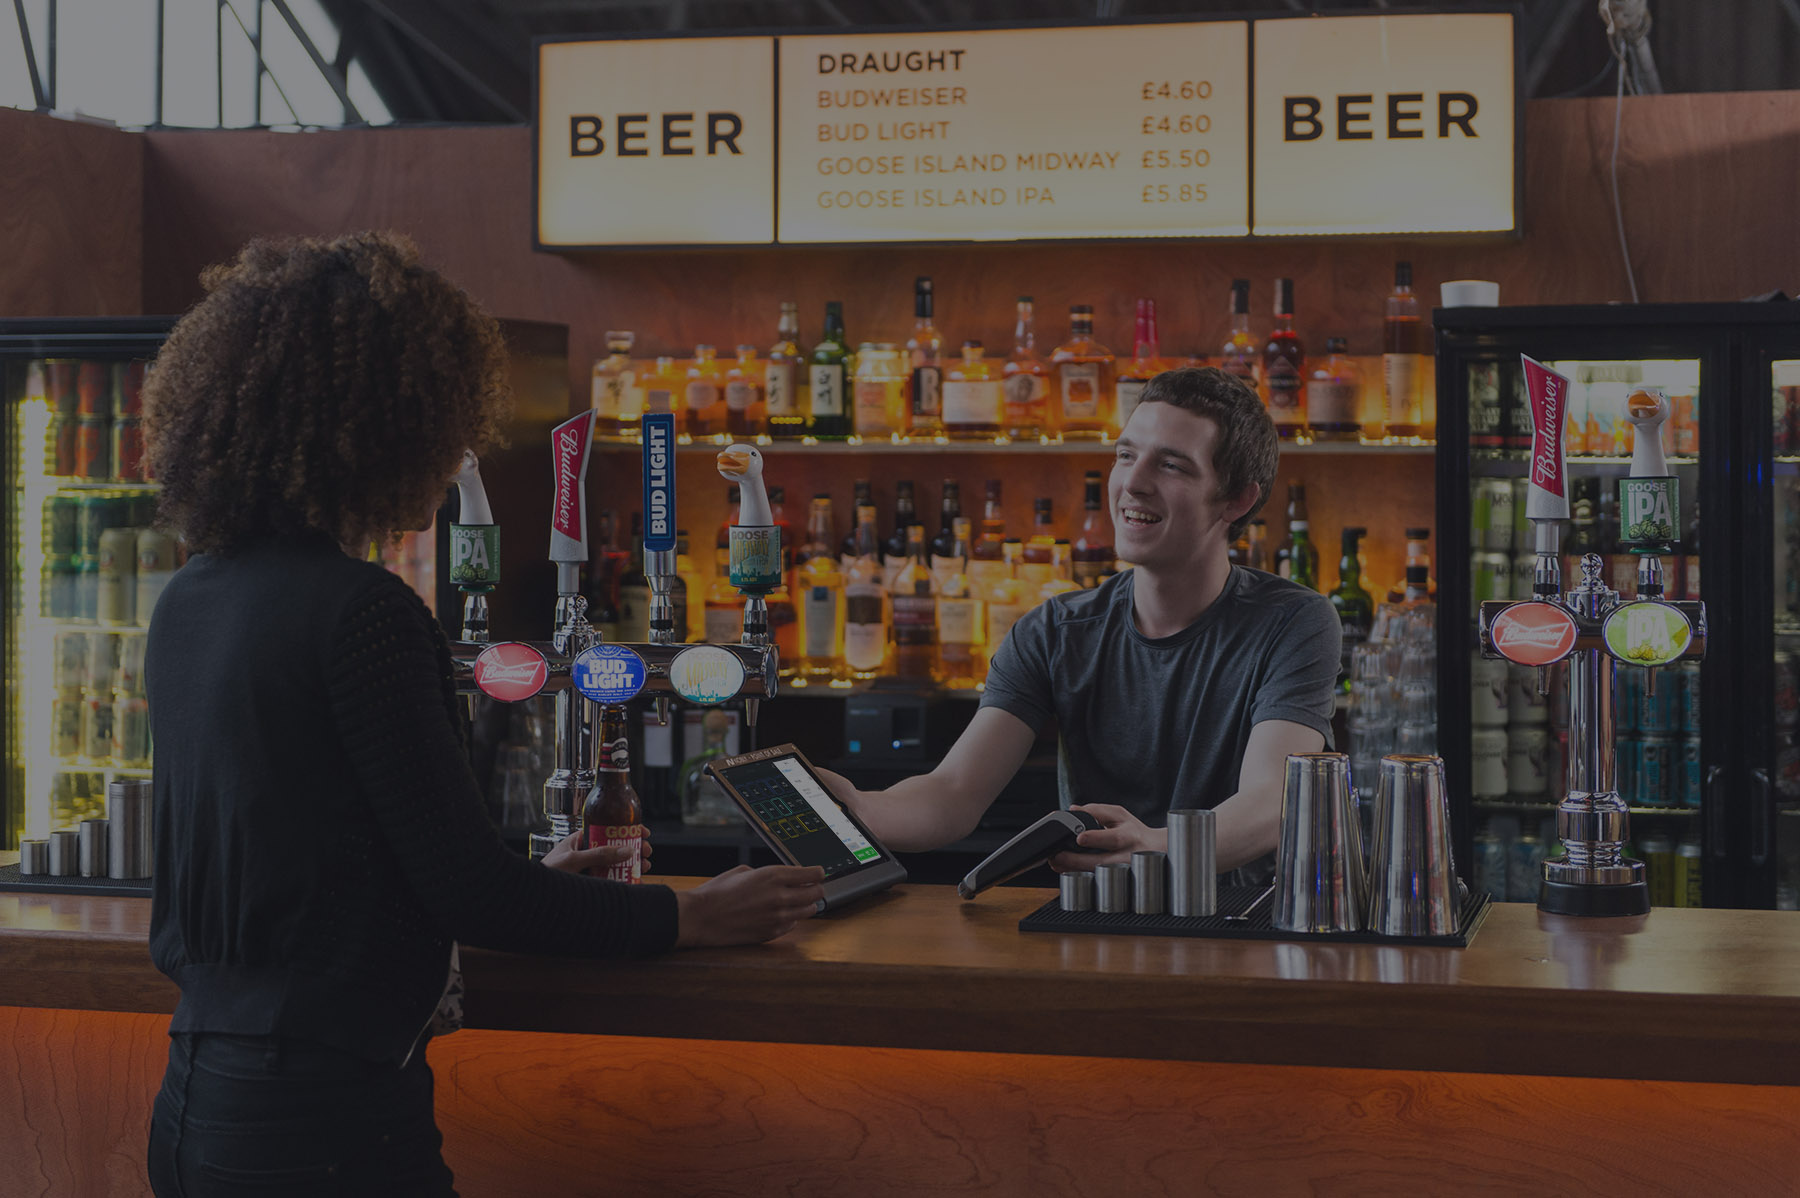 Bar staff taking payment